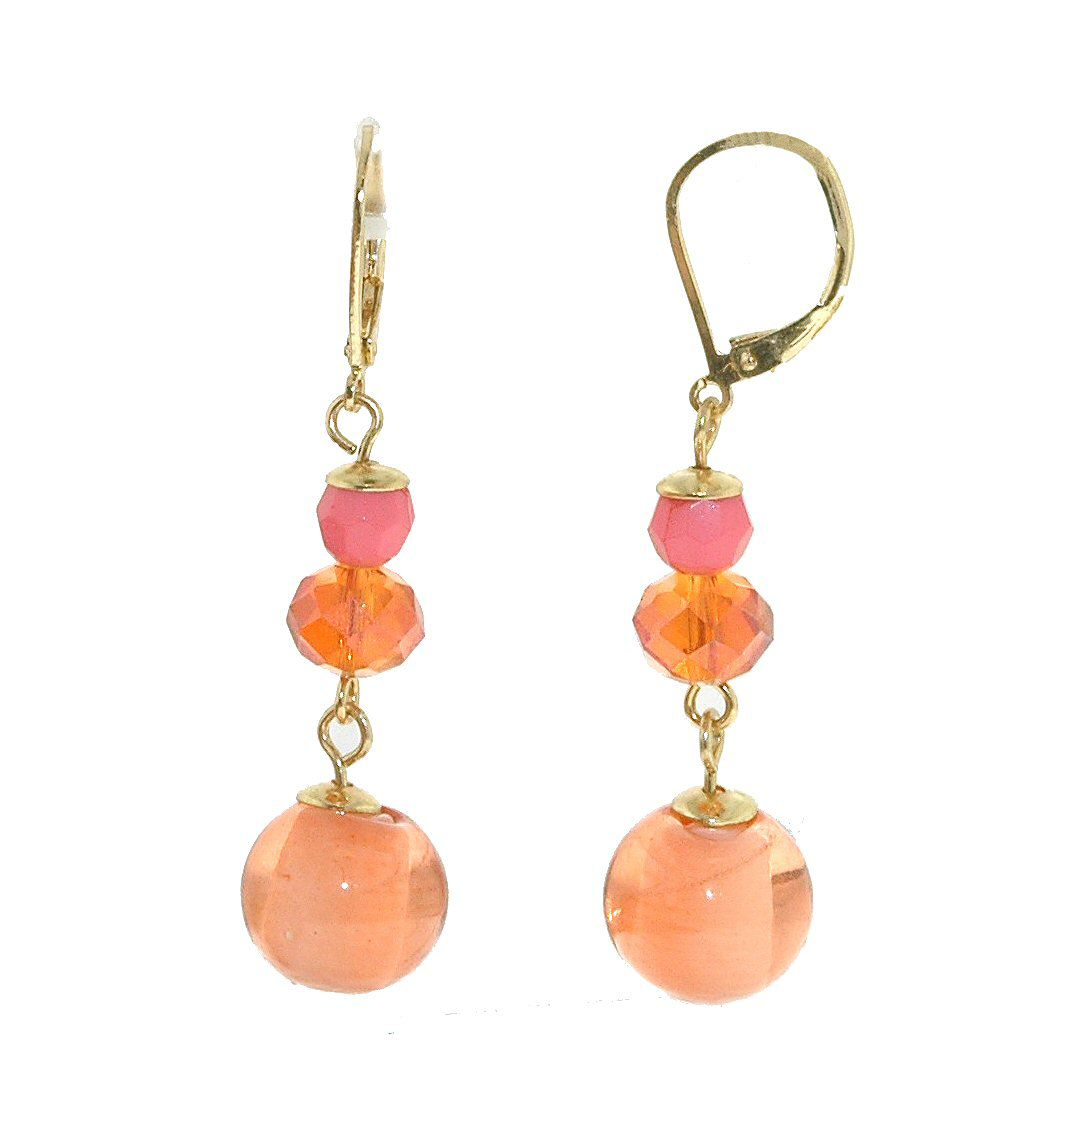 Gold & pink faceted bead earrings